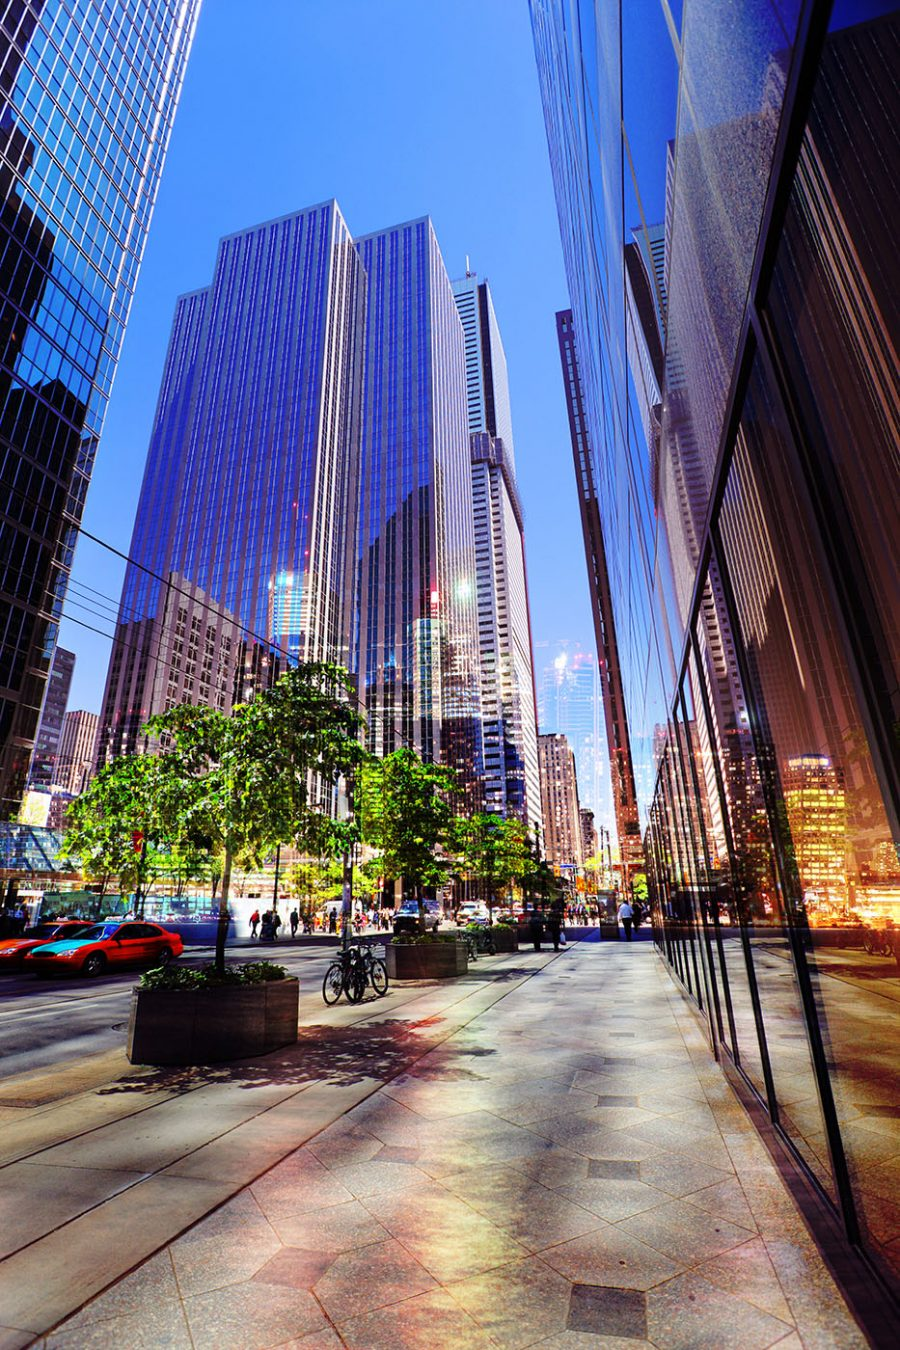 Downtown Office Street 4 - Colorful Stock Photos